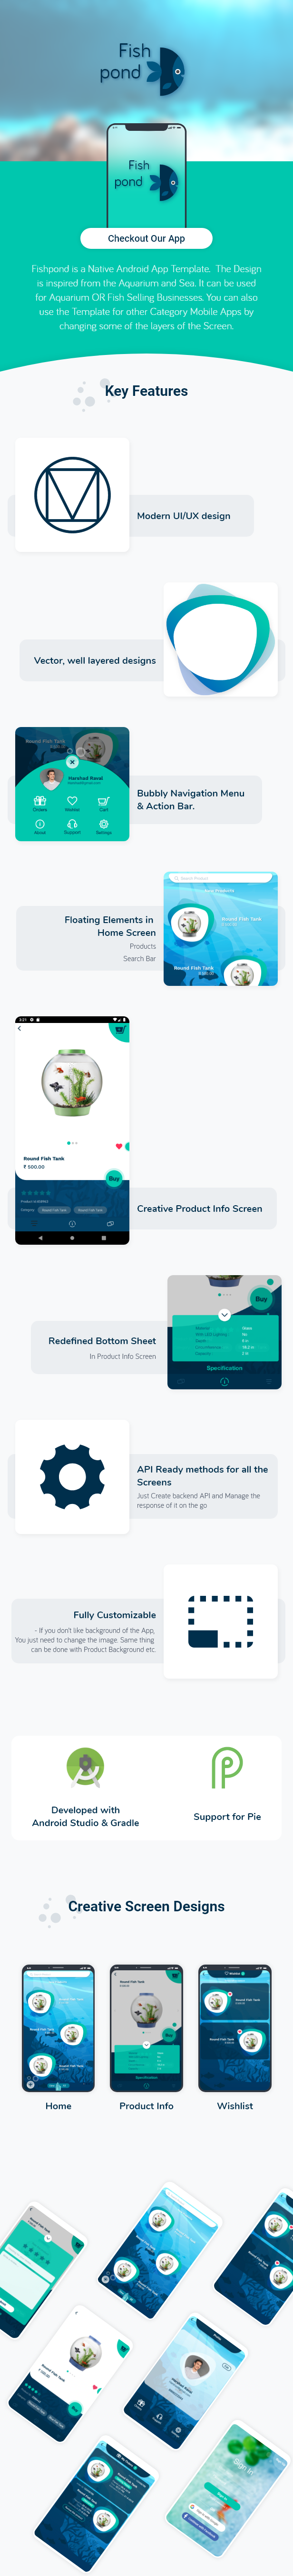 Fishpond - An E-commerce Android Template - 1